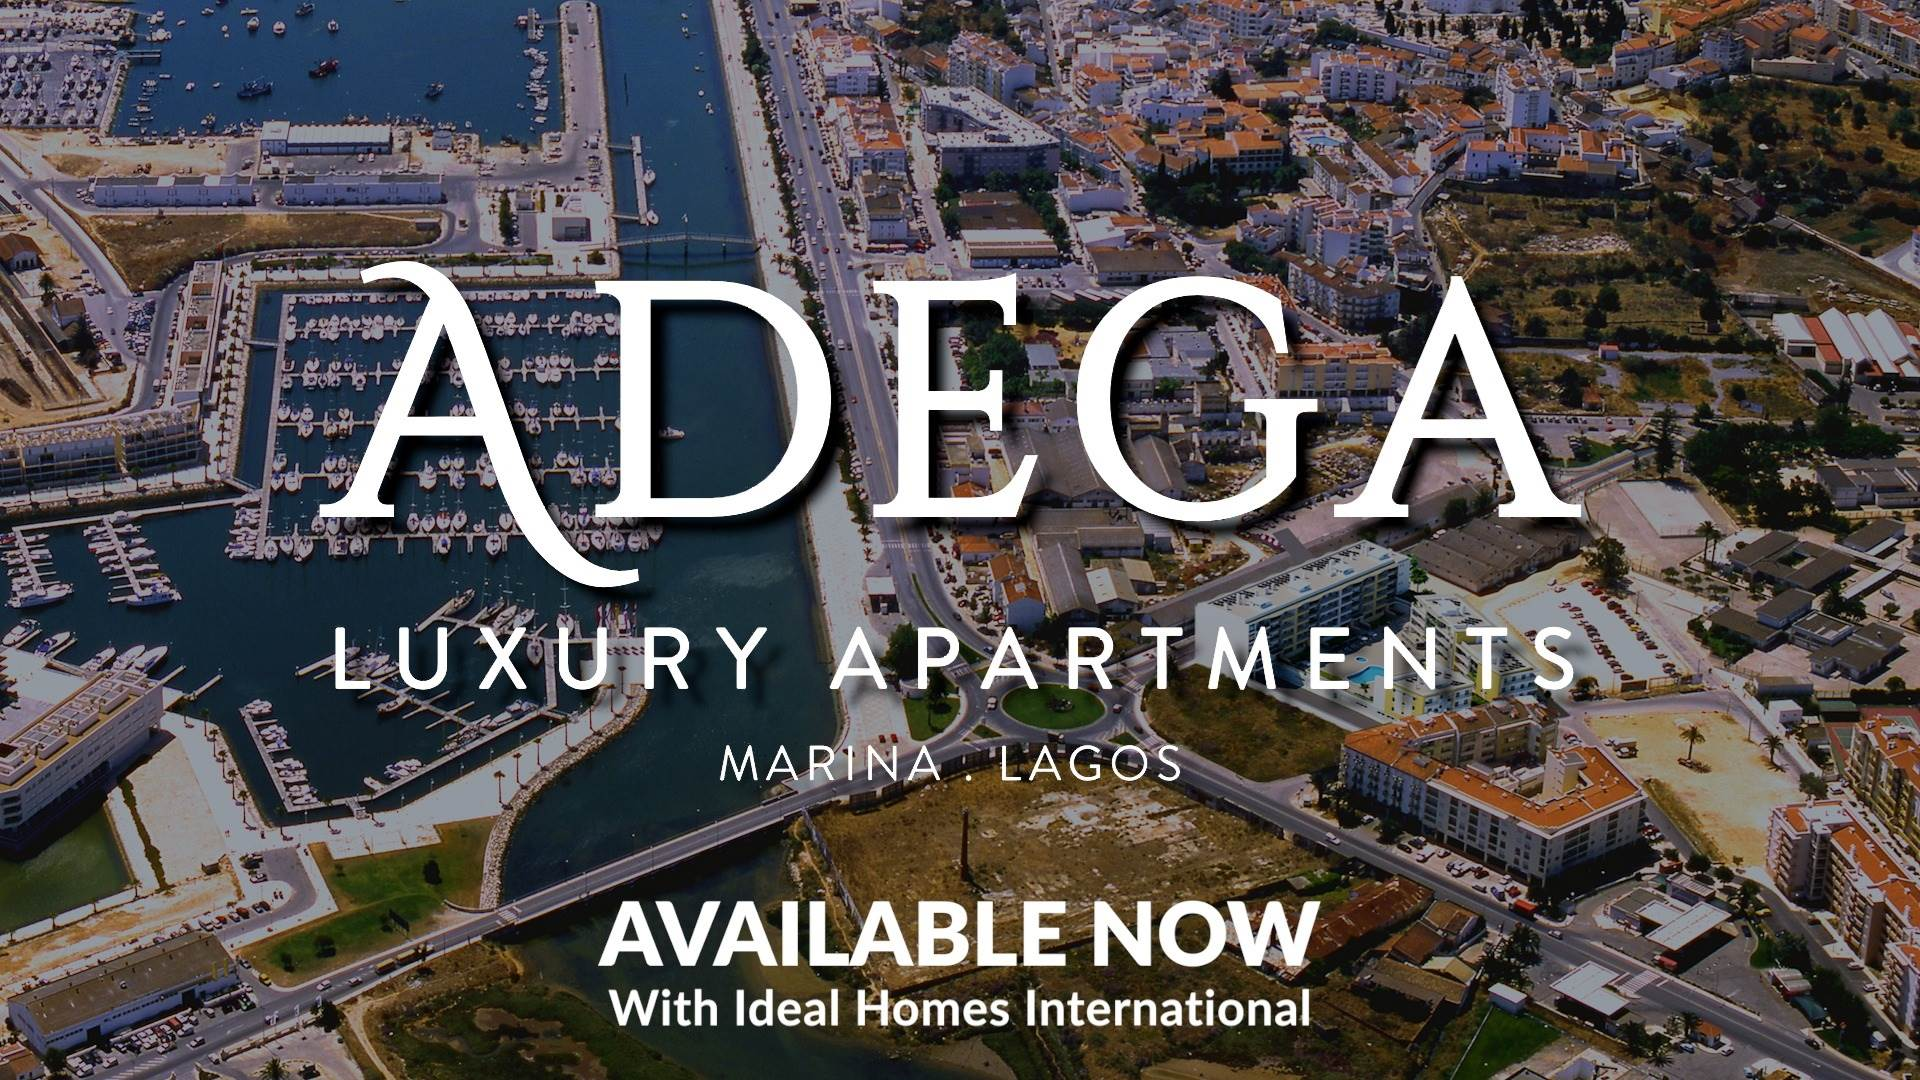 Ideal Homes Offers Investors Advice on How to Get Portugal's Golden Visa By Earning Big on Property Investments